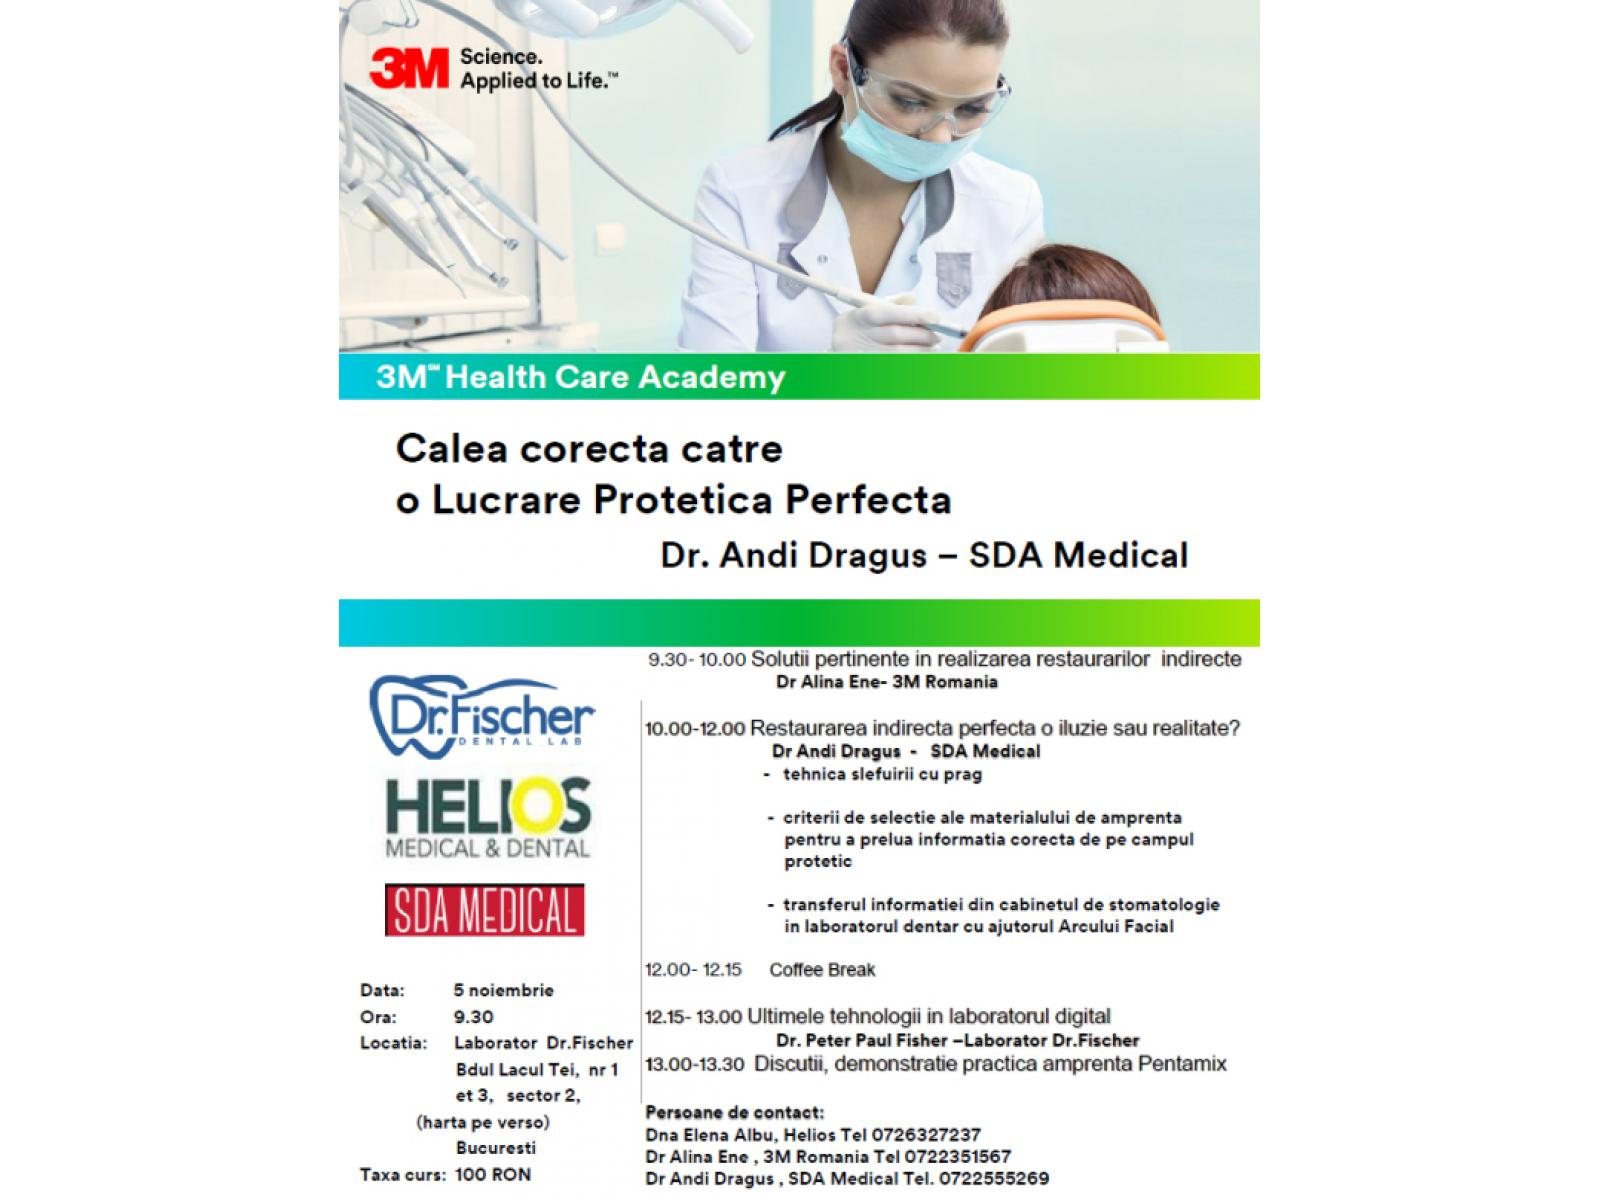 Clinica Dr. Dragus - event1_R.jpg